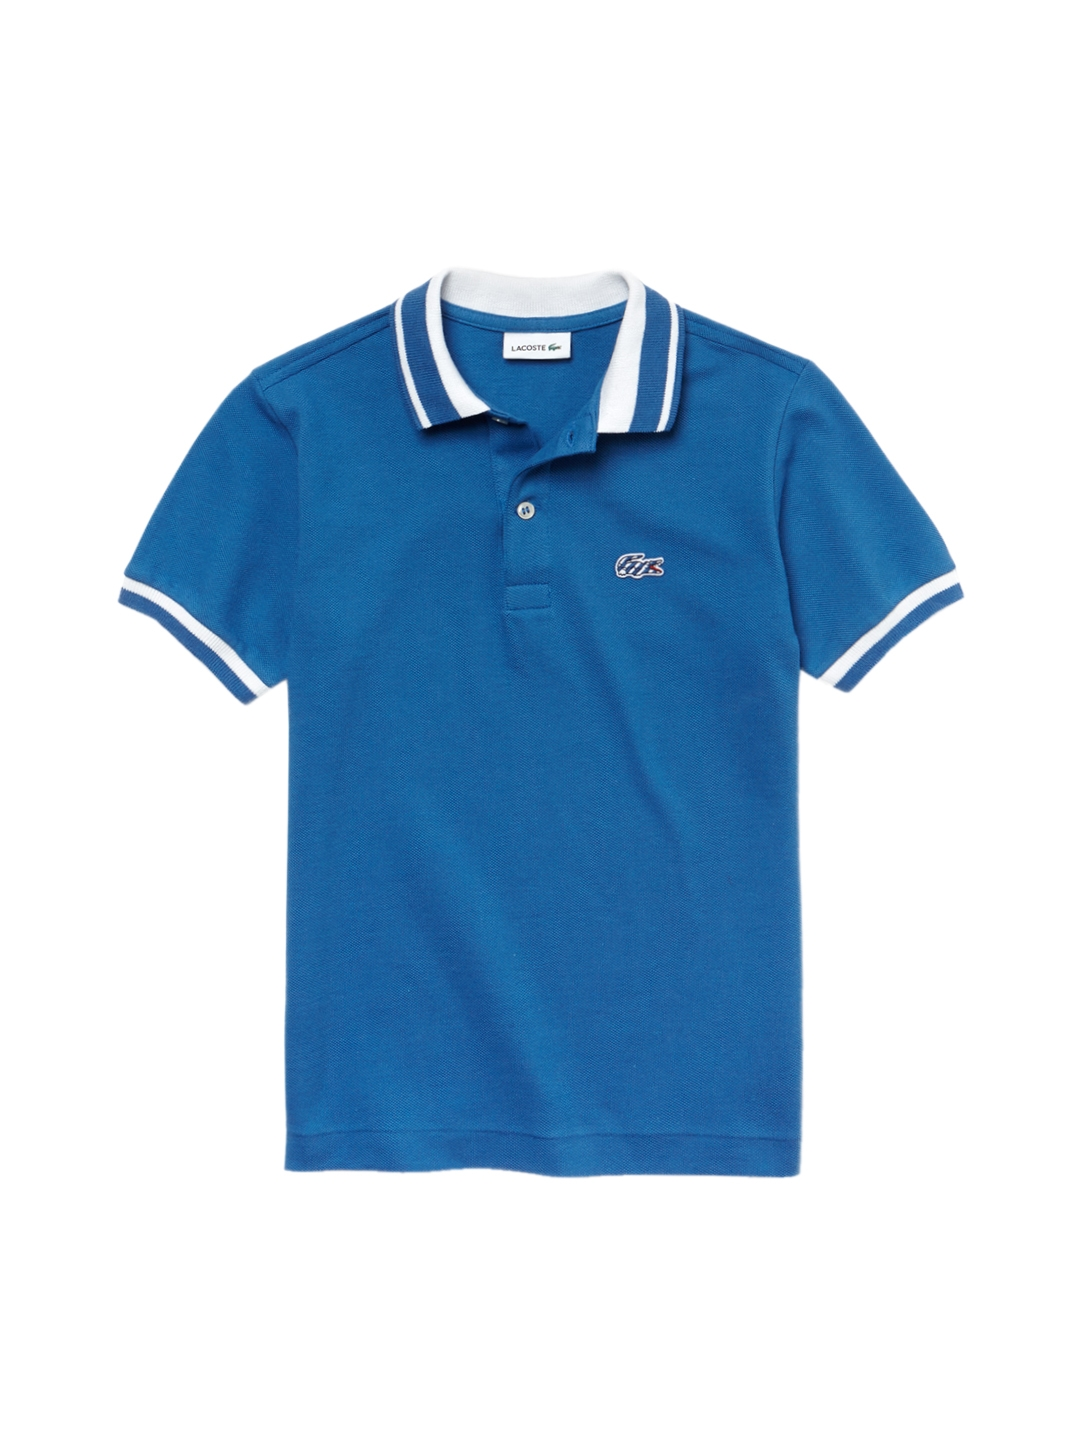 7ade557cf Buy Lacoste Boys Blue Candy Striped Cotton Polo Shirt - Tshirts for ...